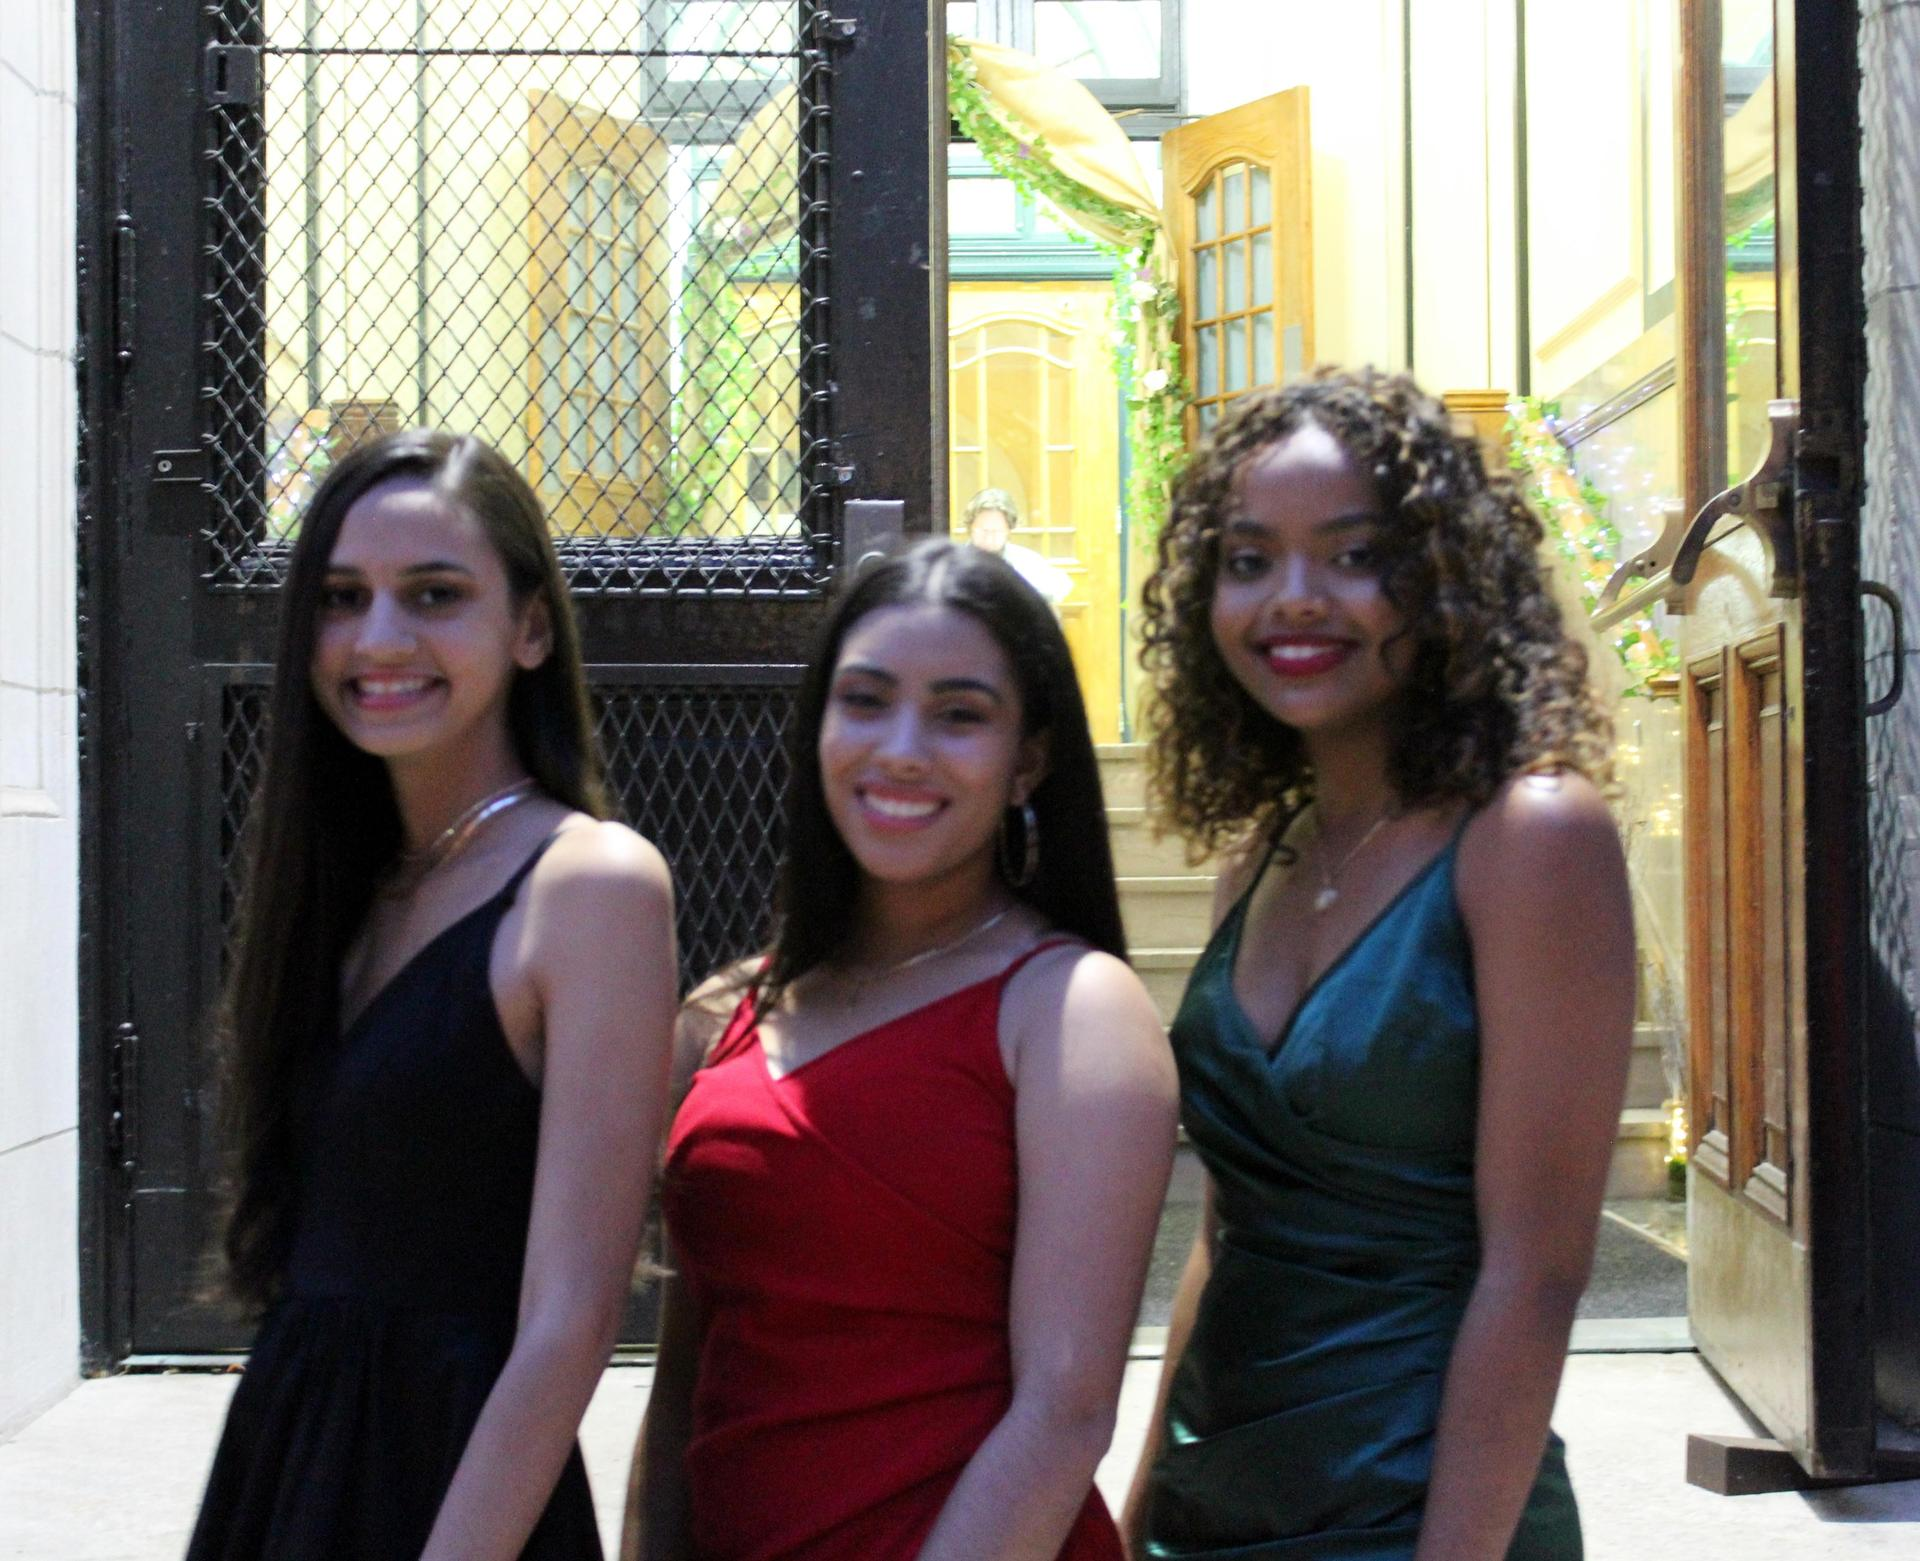 Three girls in formal wear by the front door of a school